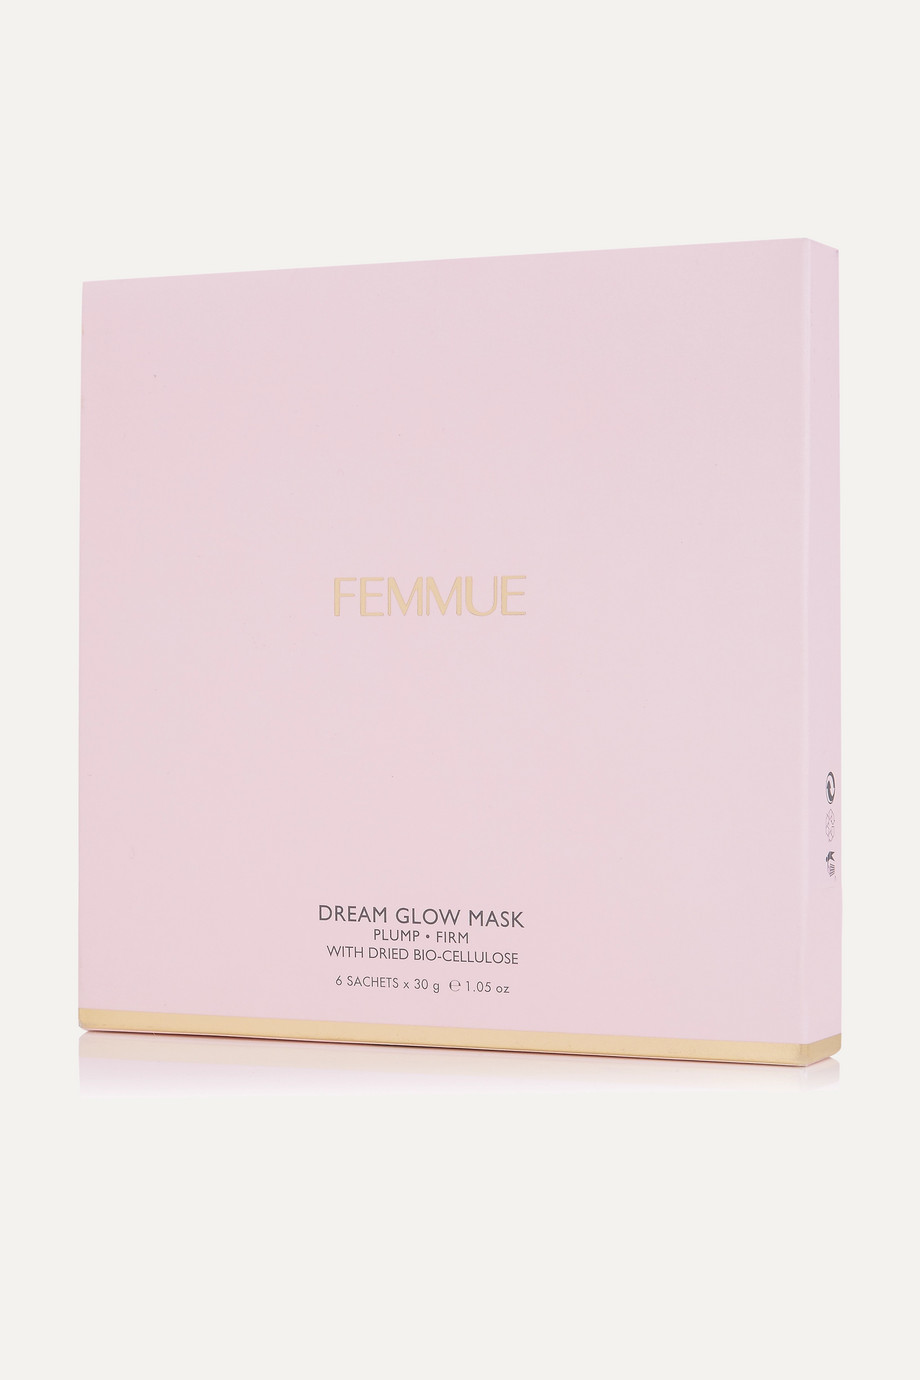 FEMMUE Dream Glow Mask - Plump + Firm x 6